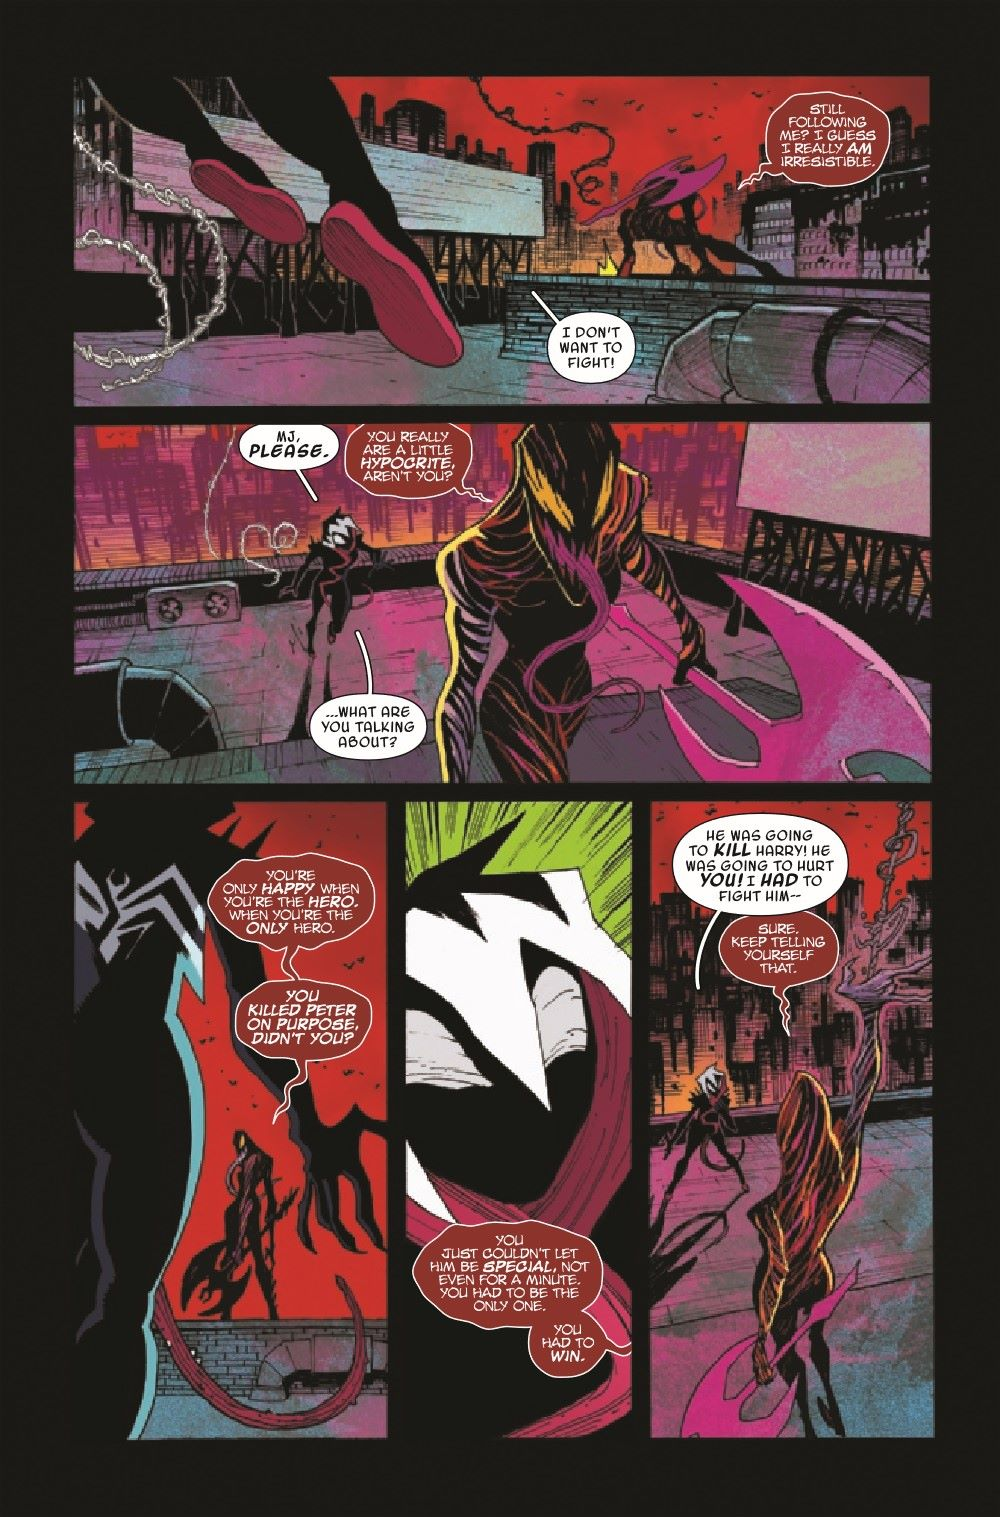 GWENOMVSCARNKIB2021003_Preview-4 ComicList Previews: KING IN BLACK GWENOM VS CARNAGE #3 (OF 3)